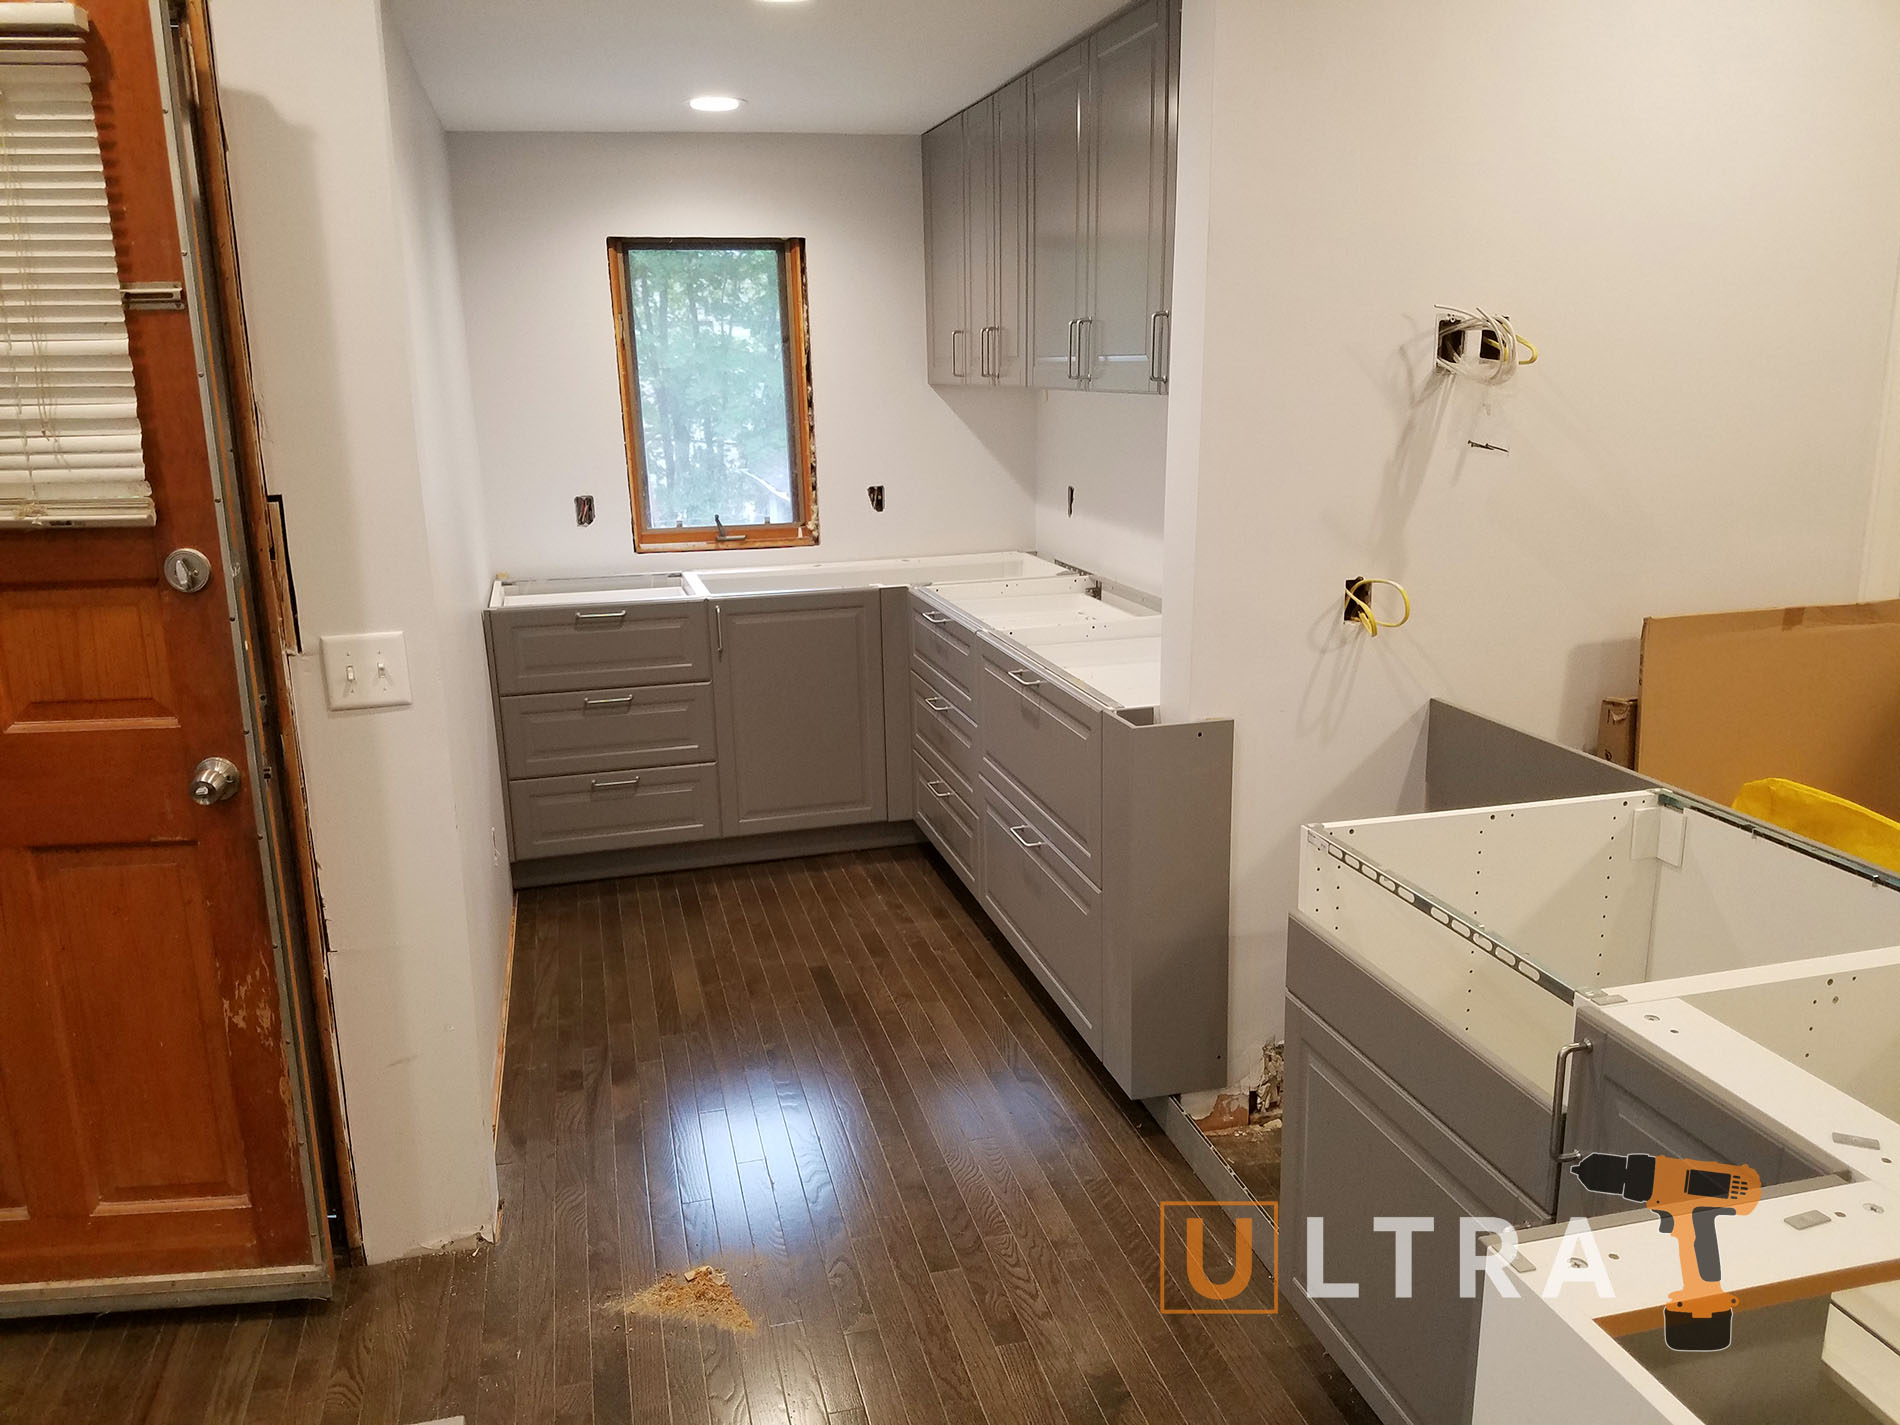 Assembly and installation of cabinets